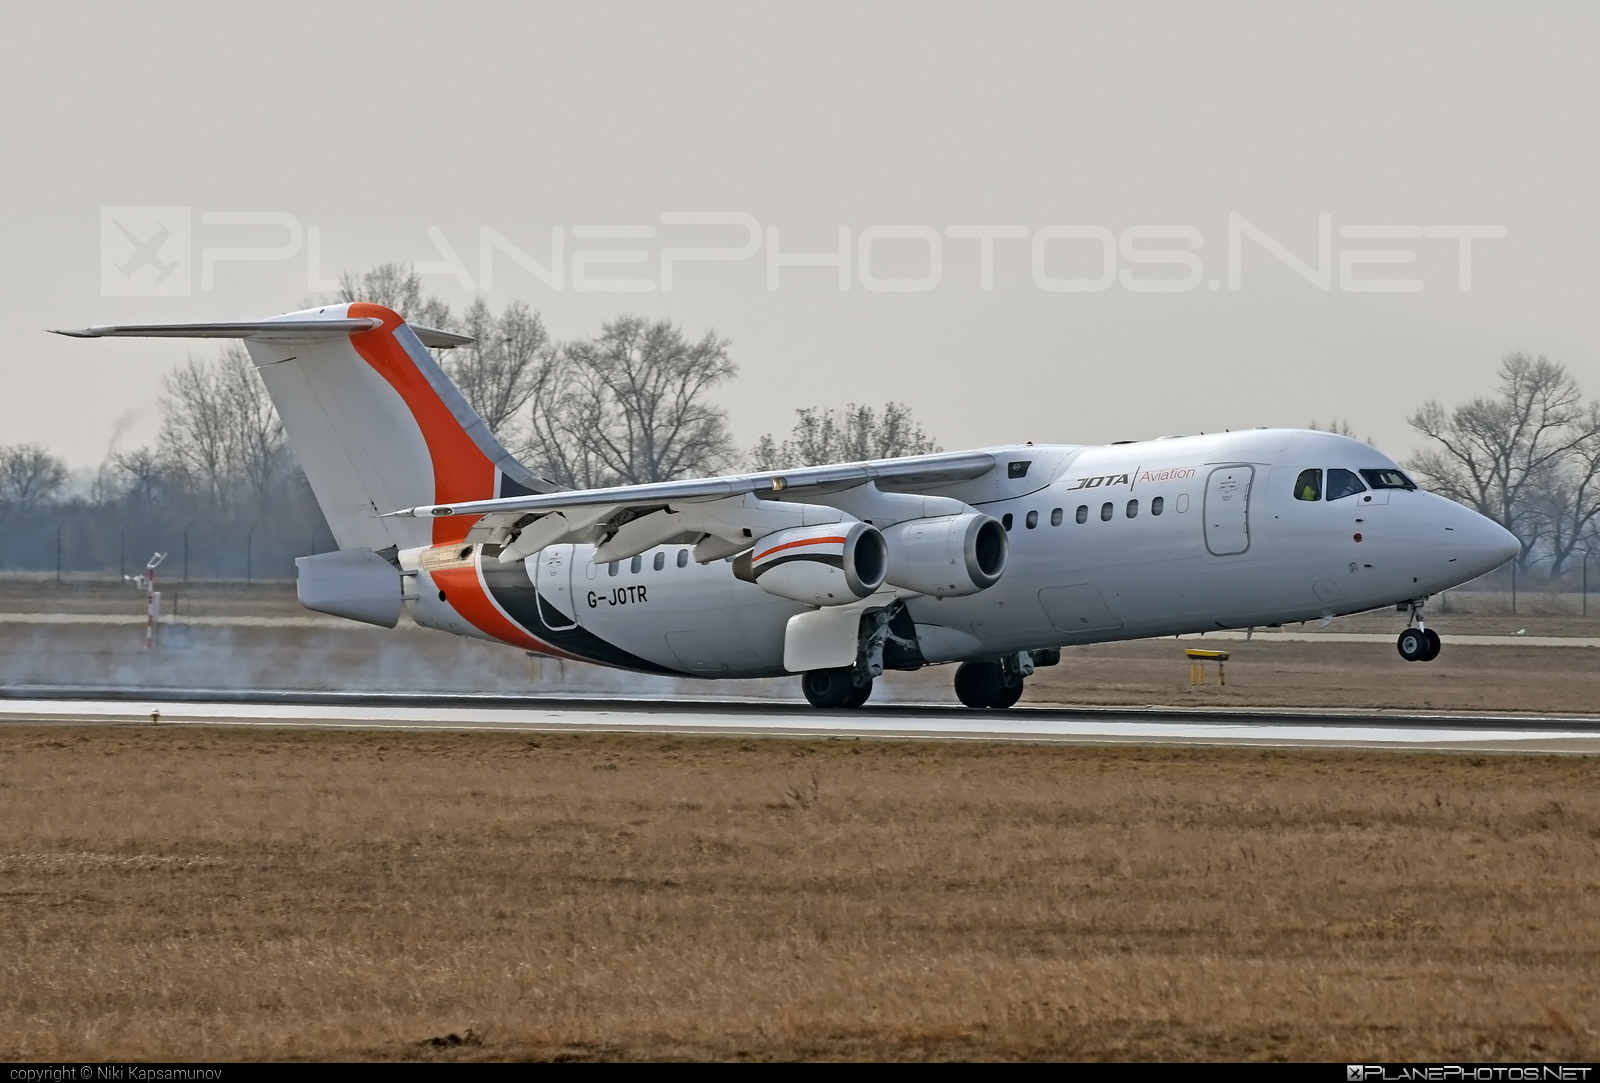 British Aerospace Avro RJ85 - G-JOTR operated by Jota Aviation #avro146rj85 #avrorj85 #bae146 #britishaerospace